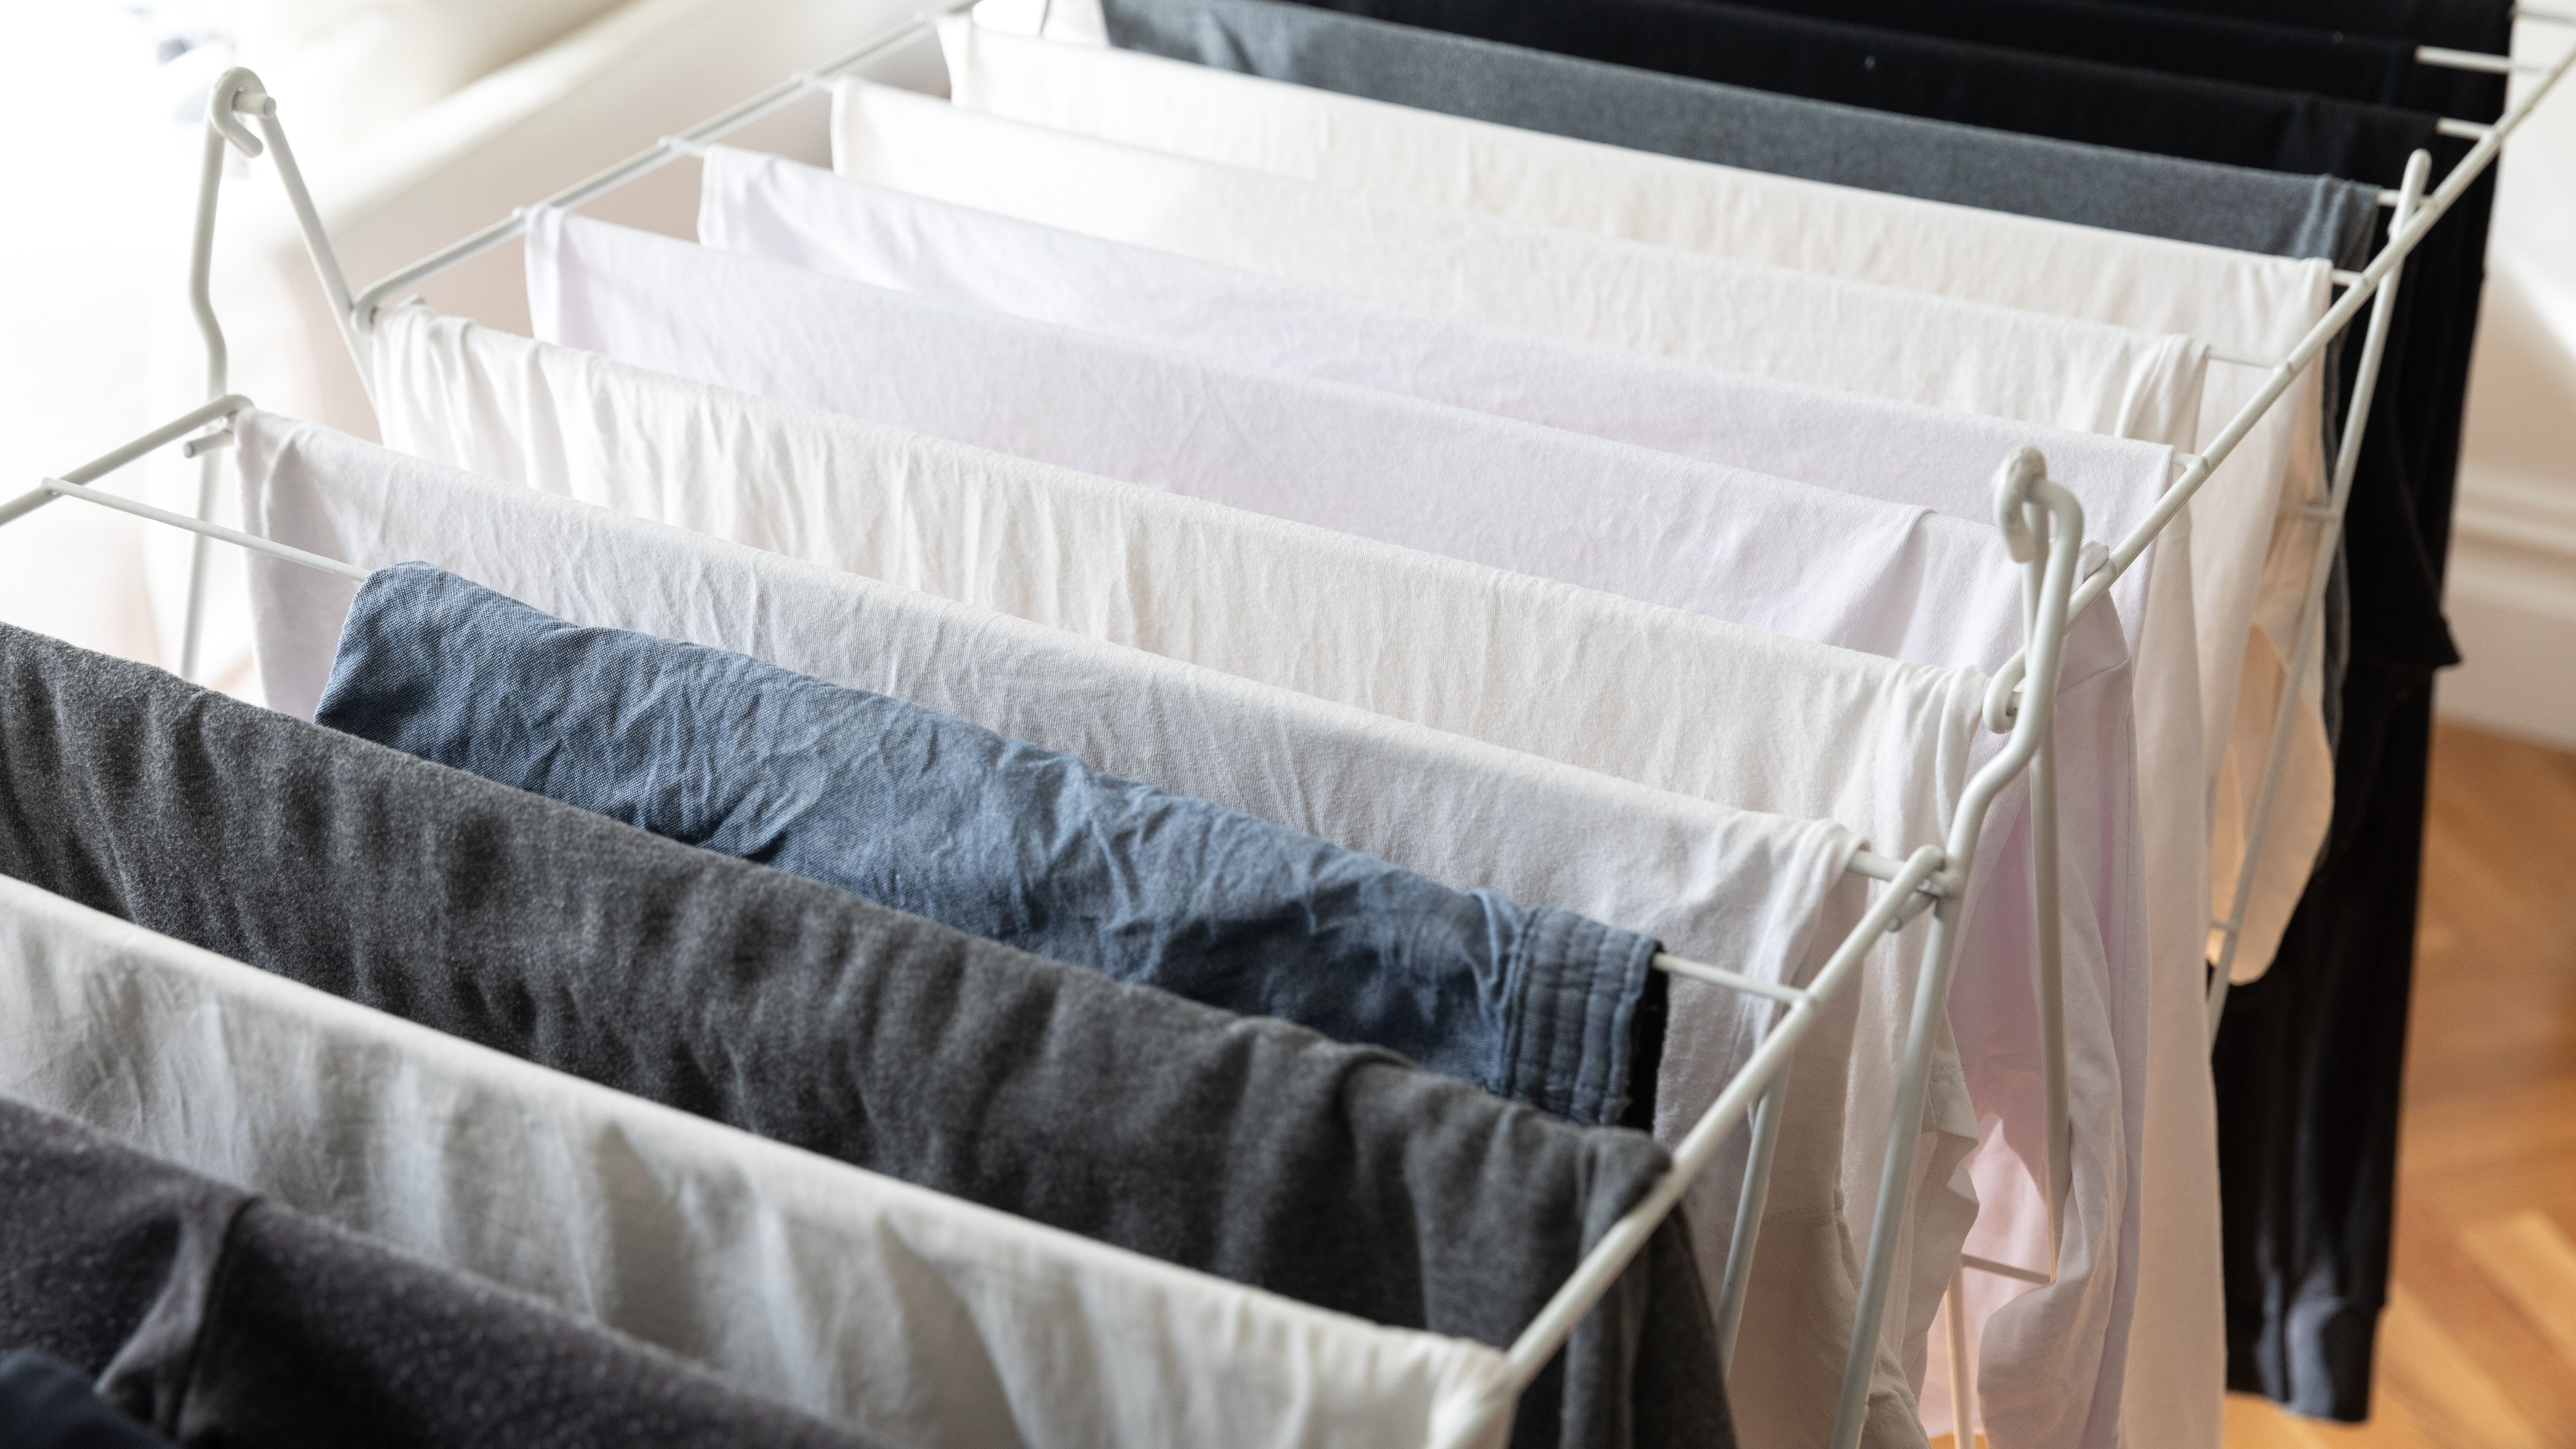 Tips for Line Drying Clothes Indoors